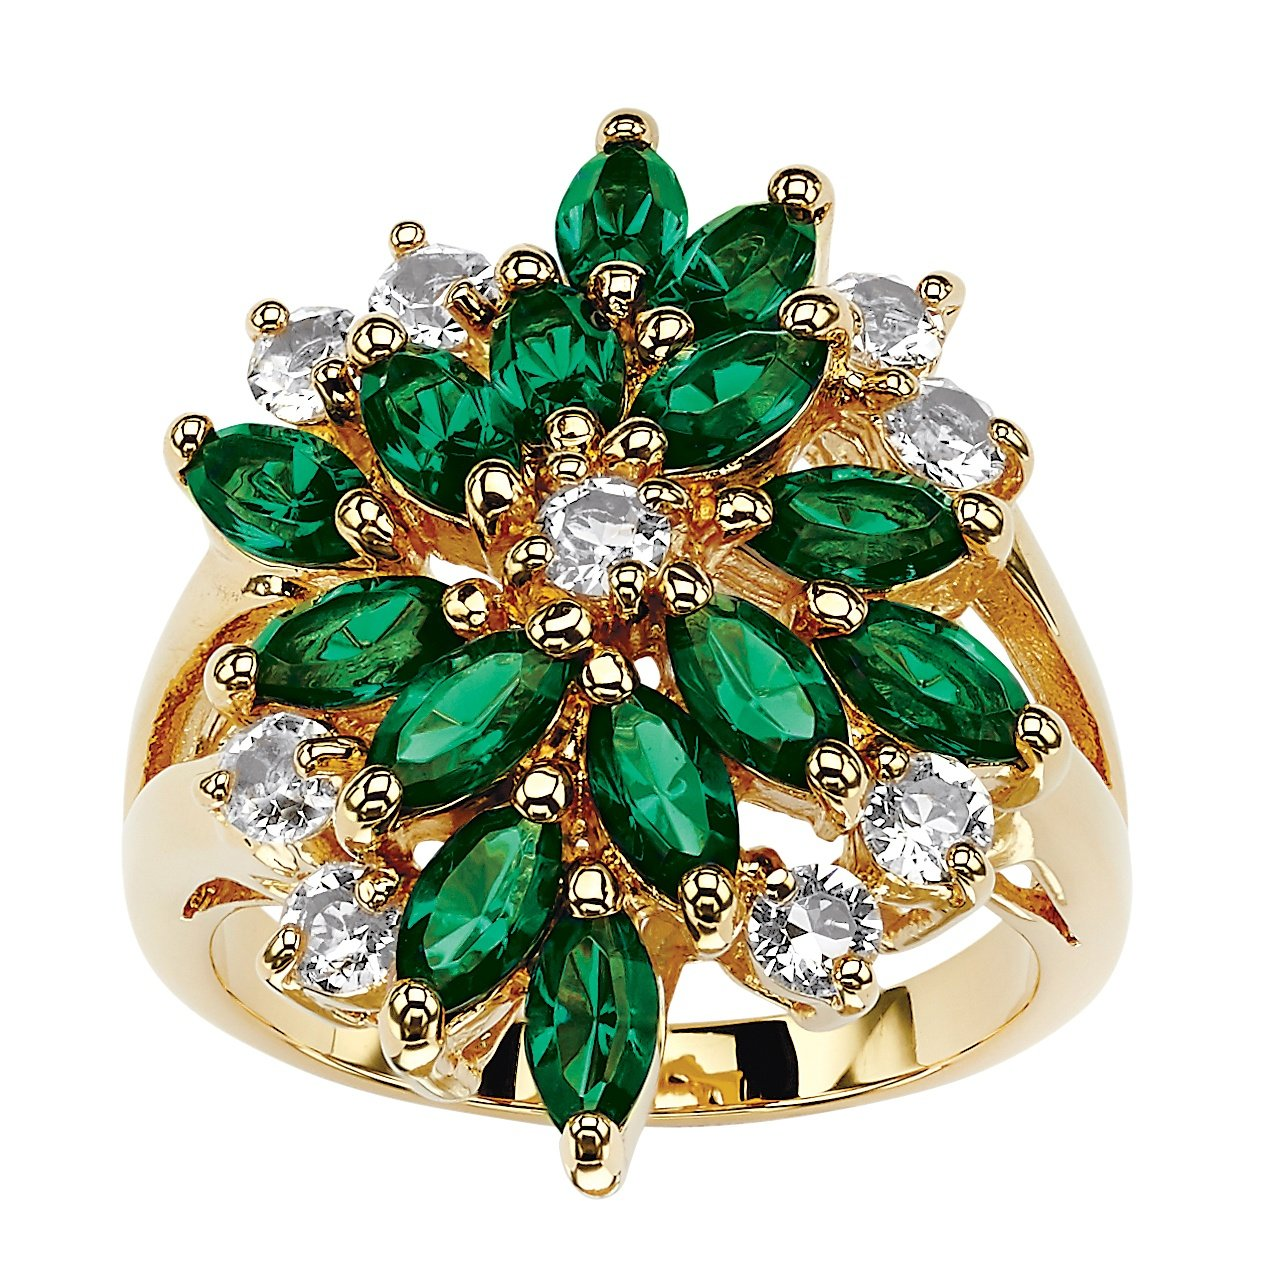 Palm Beach Jewelry 18K Gold-Plated Marquise Cut Green Floral Ring Made Swarovski Elements Size 9